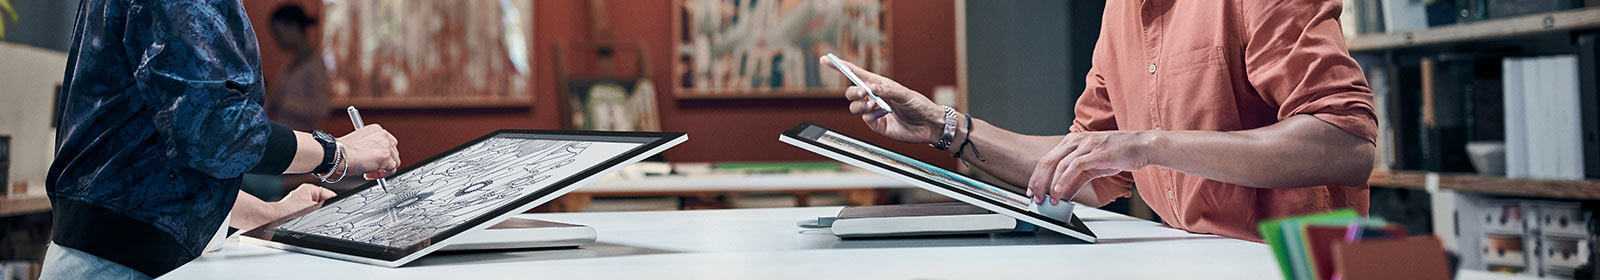 Two people drawing on tablets